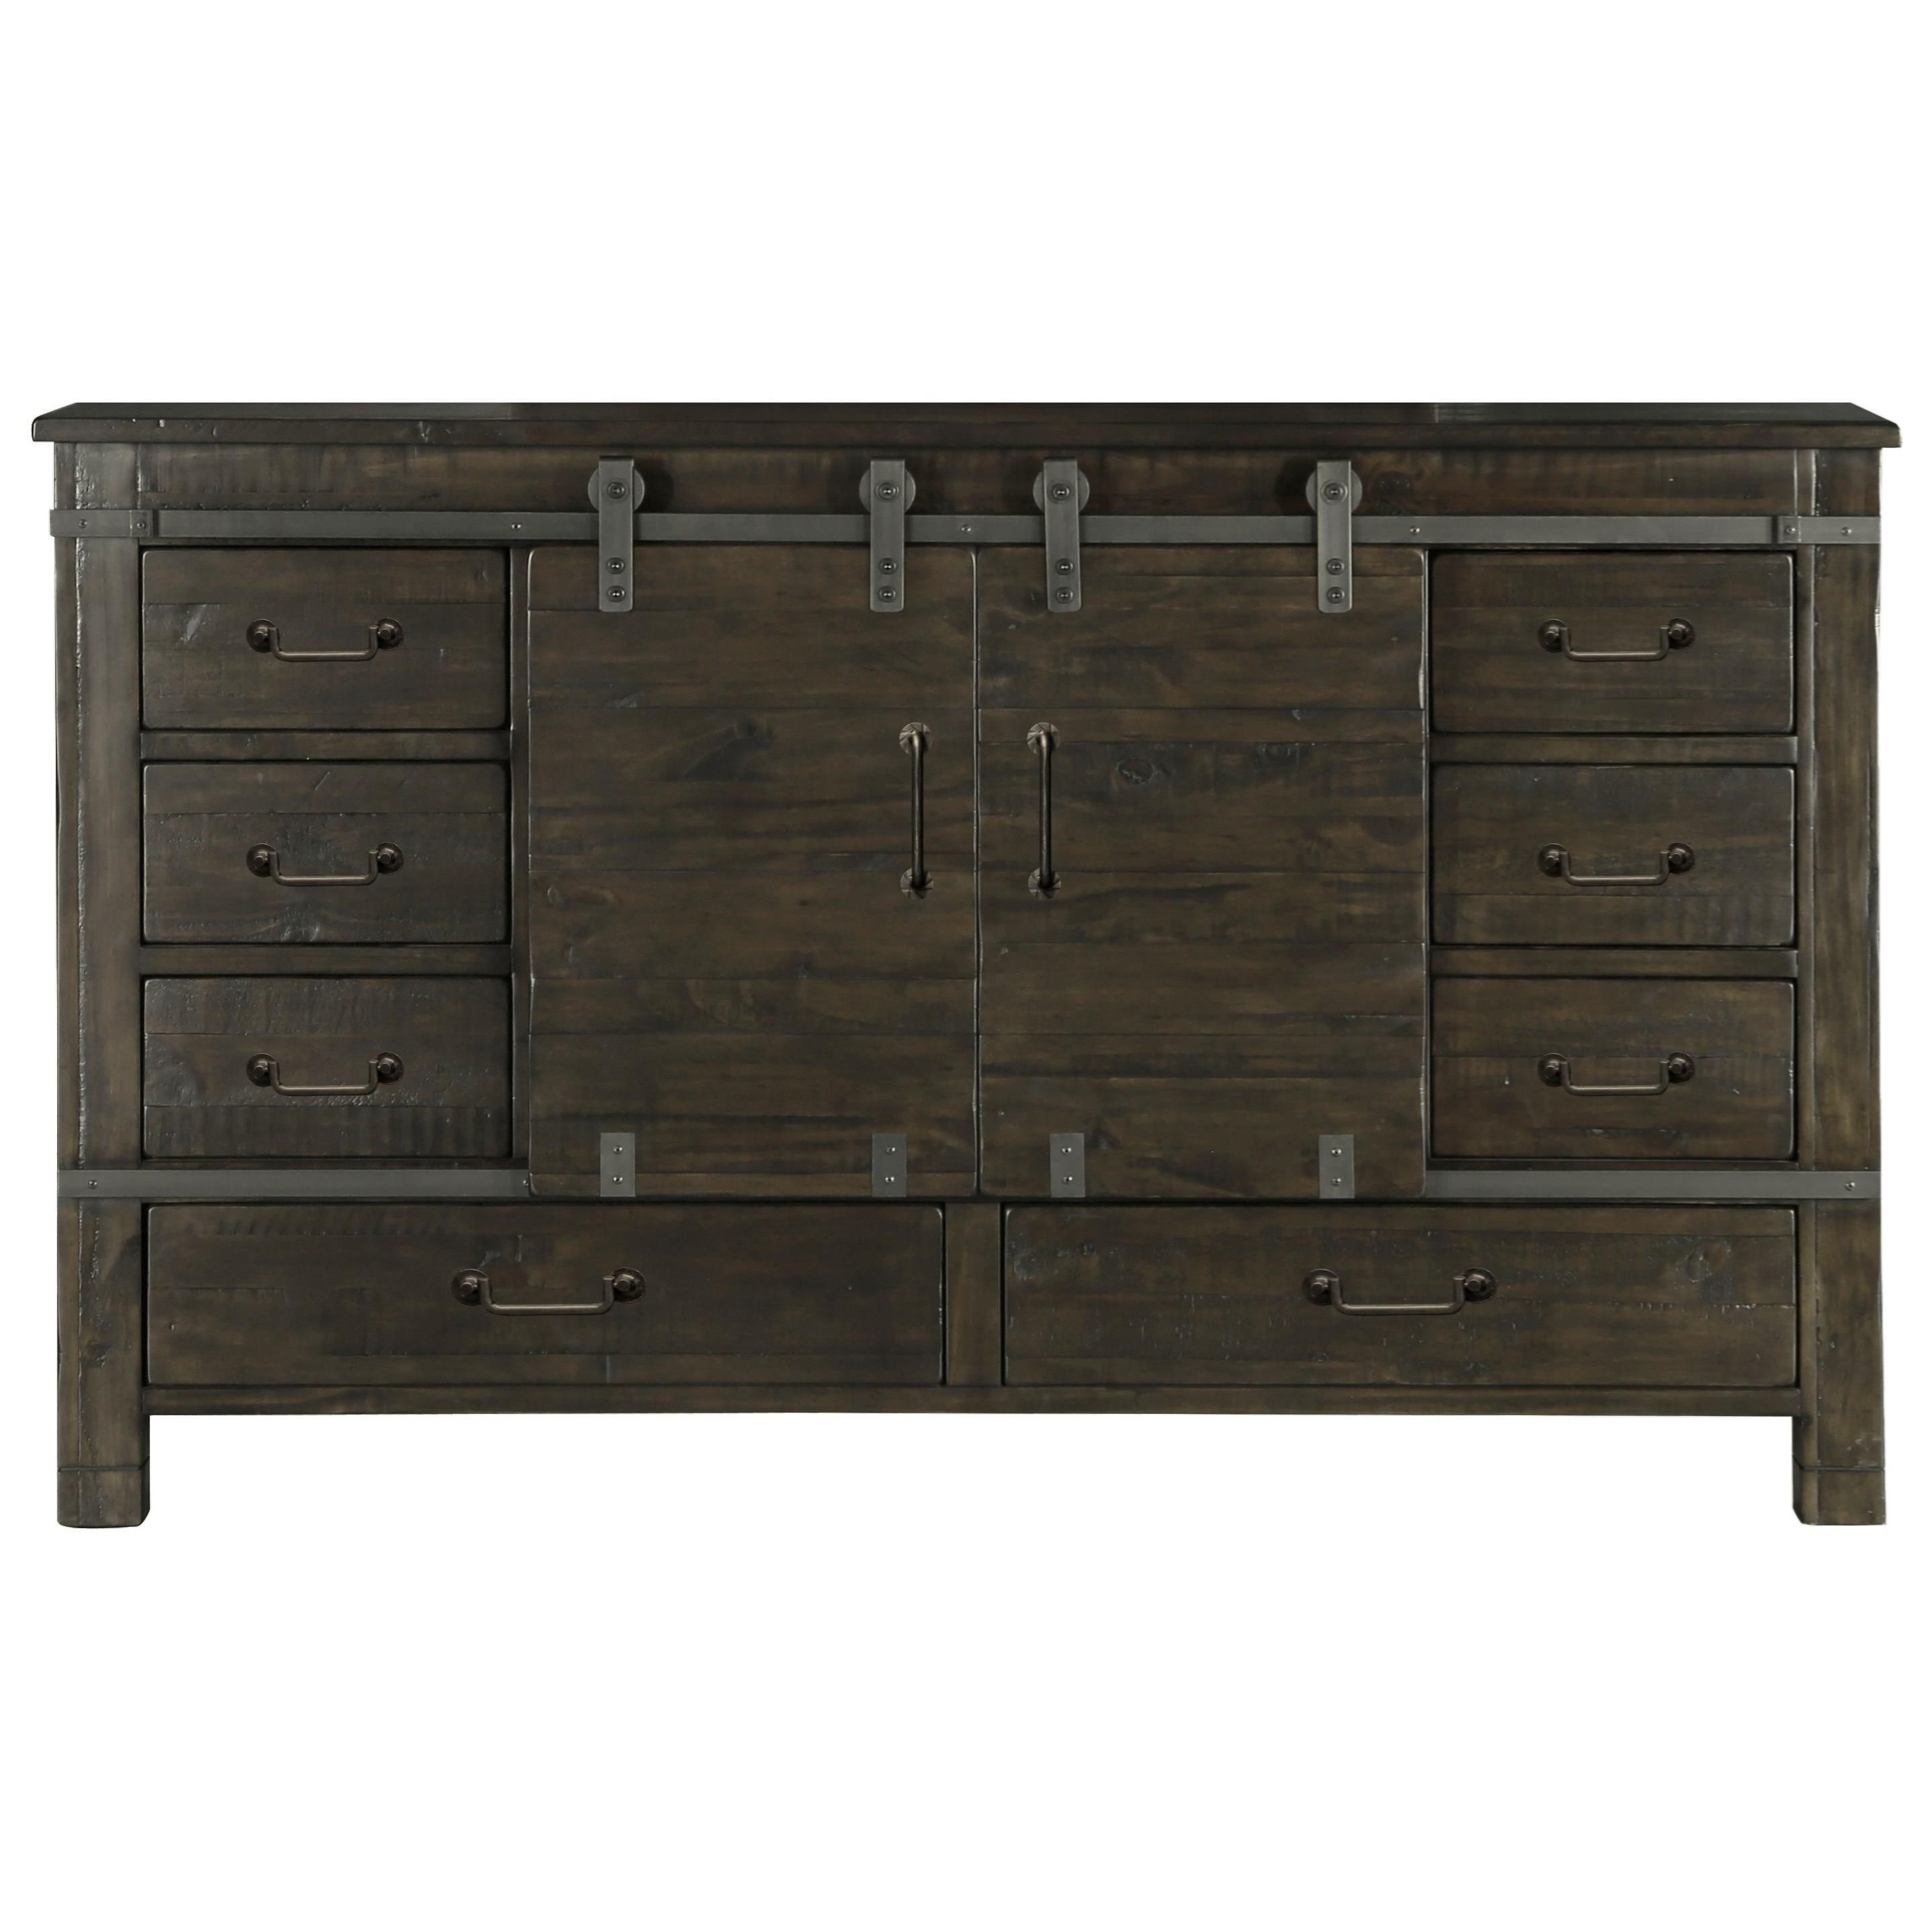 Abington Sliding Door Dresser by Magnussen Home at Stoney Creek Furniture